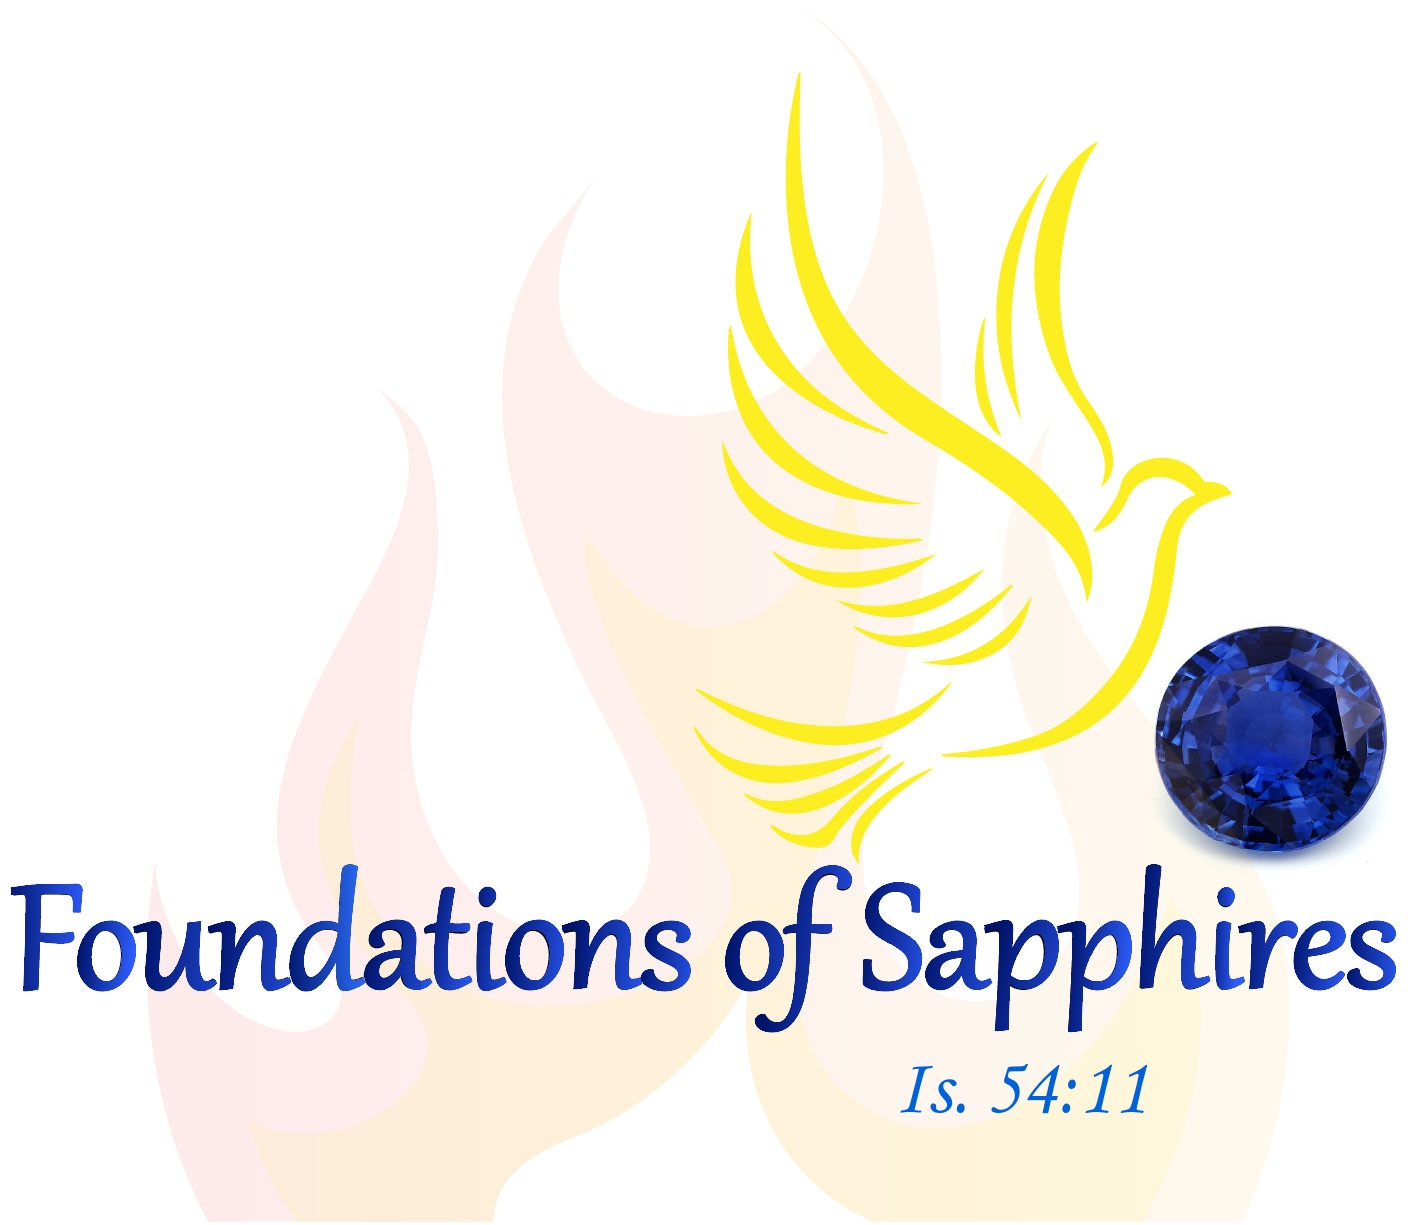 Foundations of Sapphires